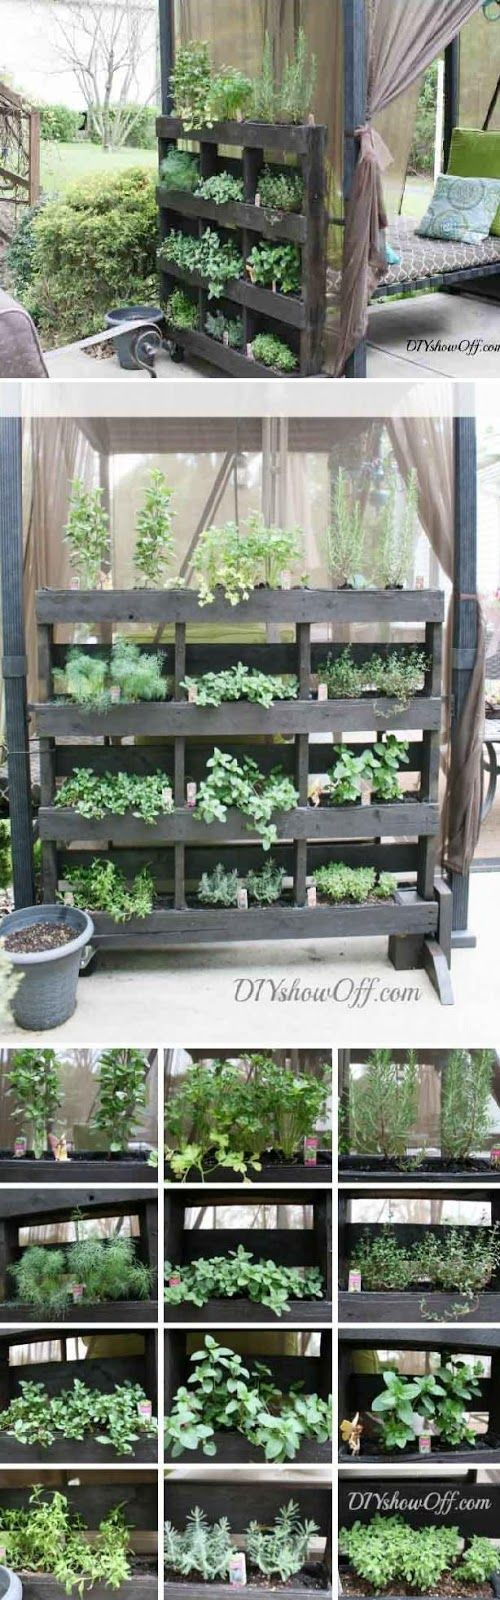 As we have seen in previous posts, recycled pallets are perfect to create interesting vertical gardens, ideal as decorative elements in ...